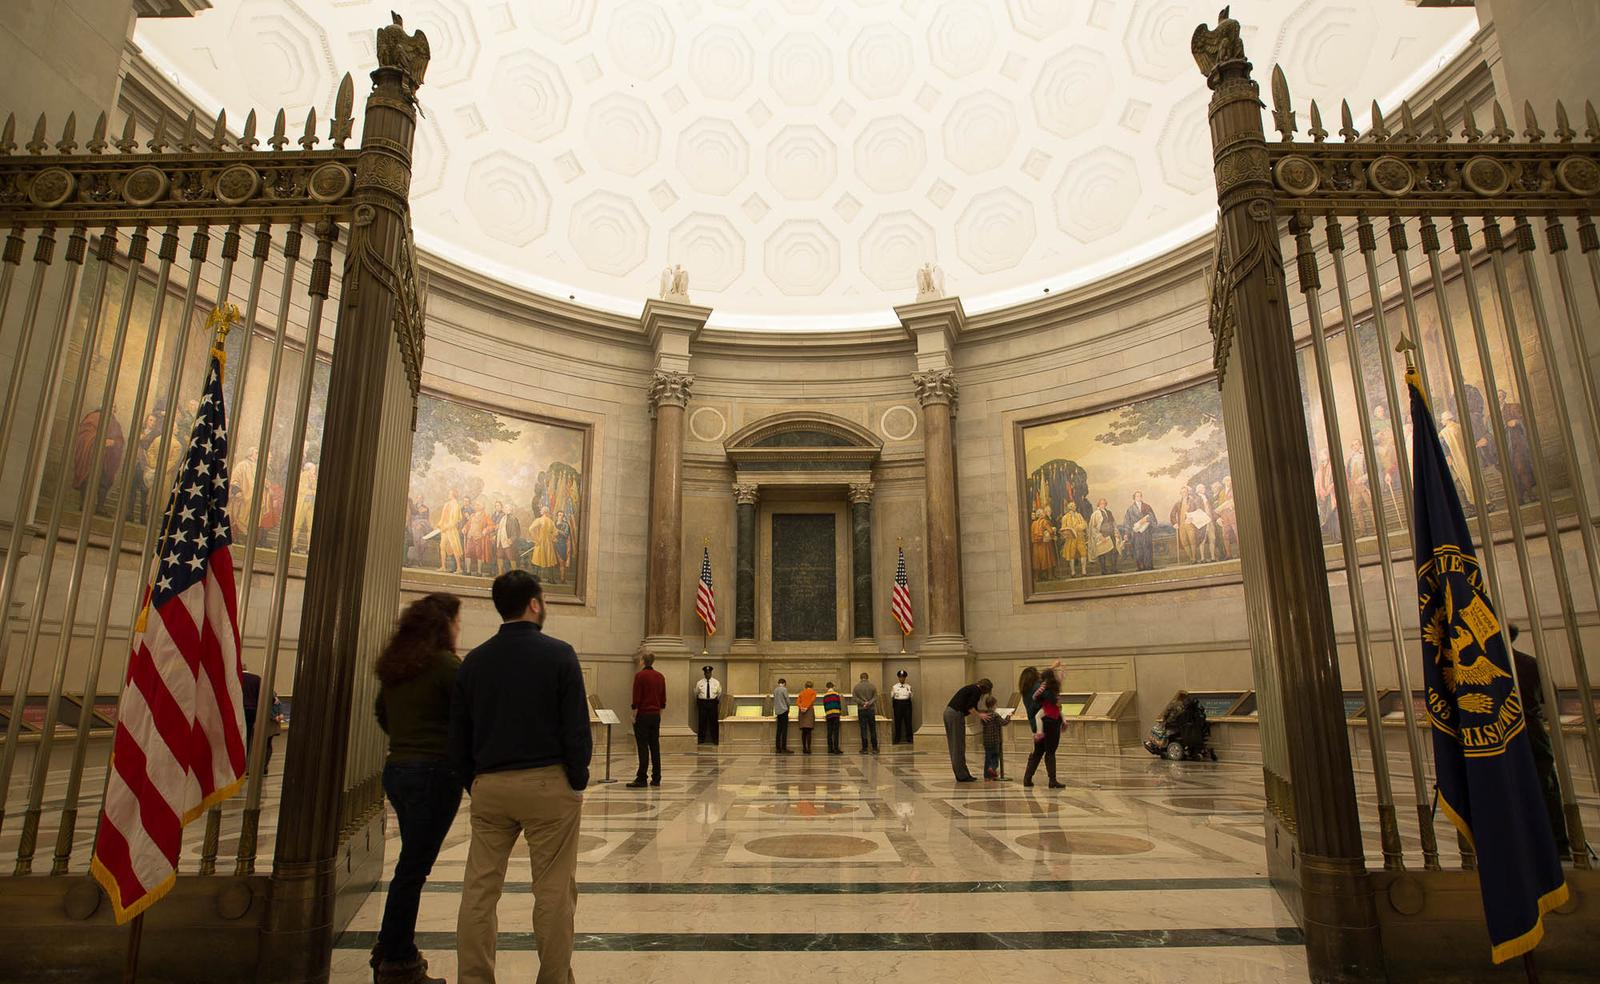 The Rotunda for the Charters of Freedom.